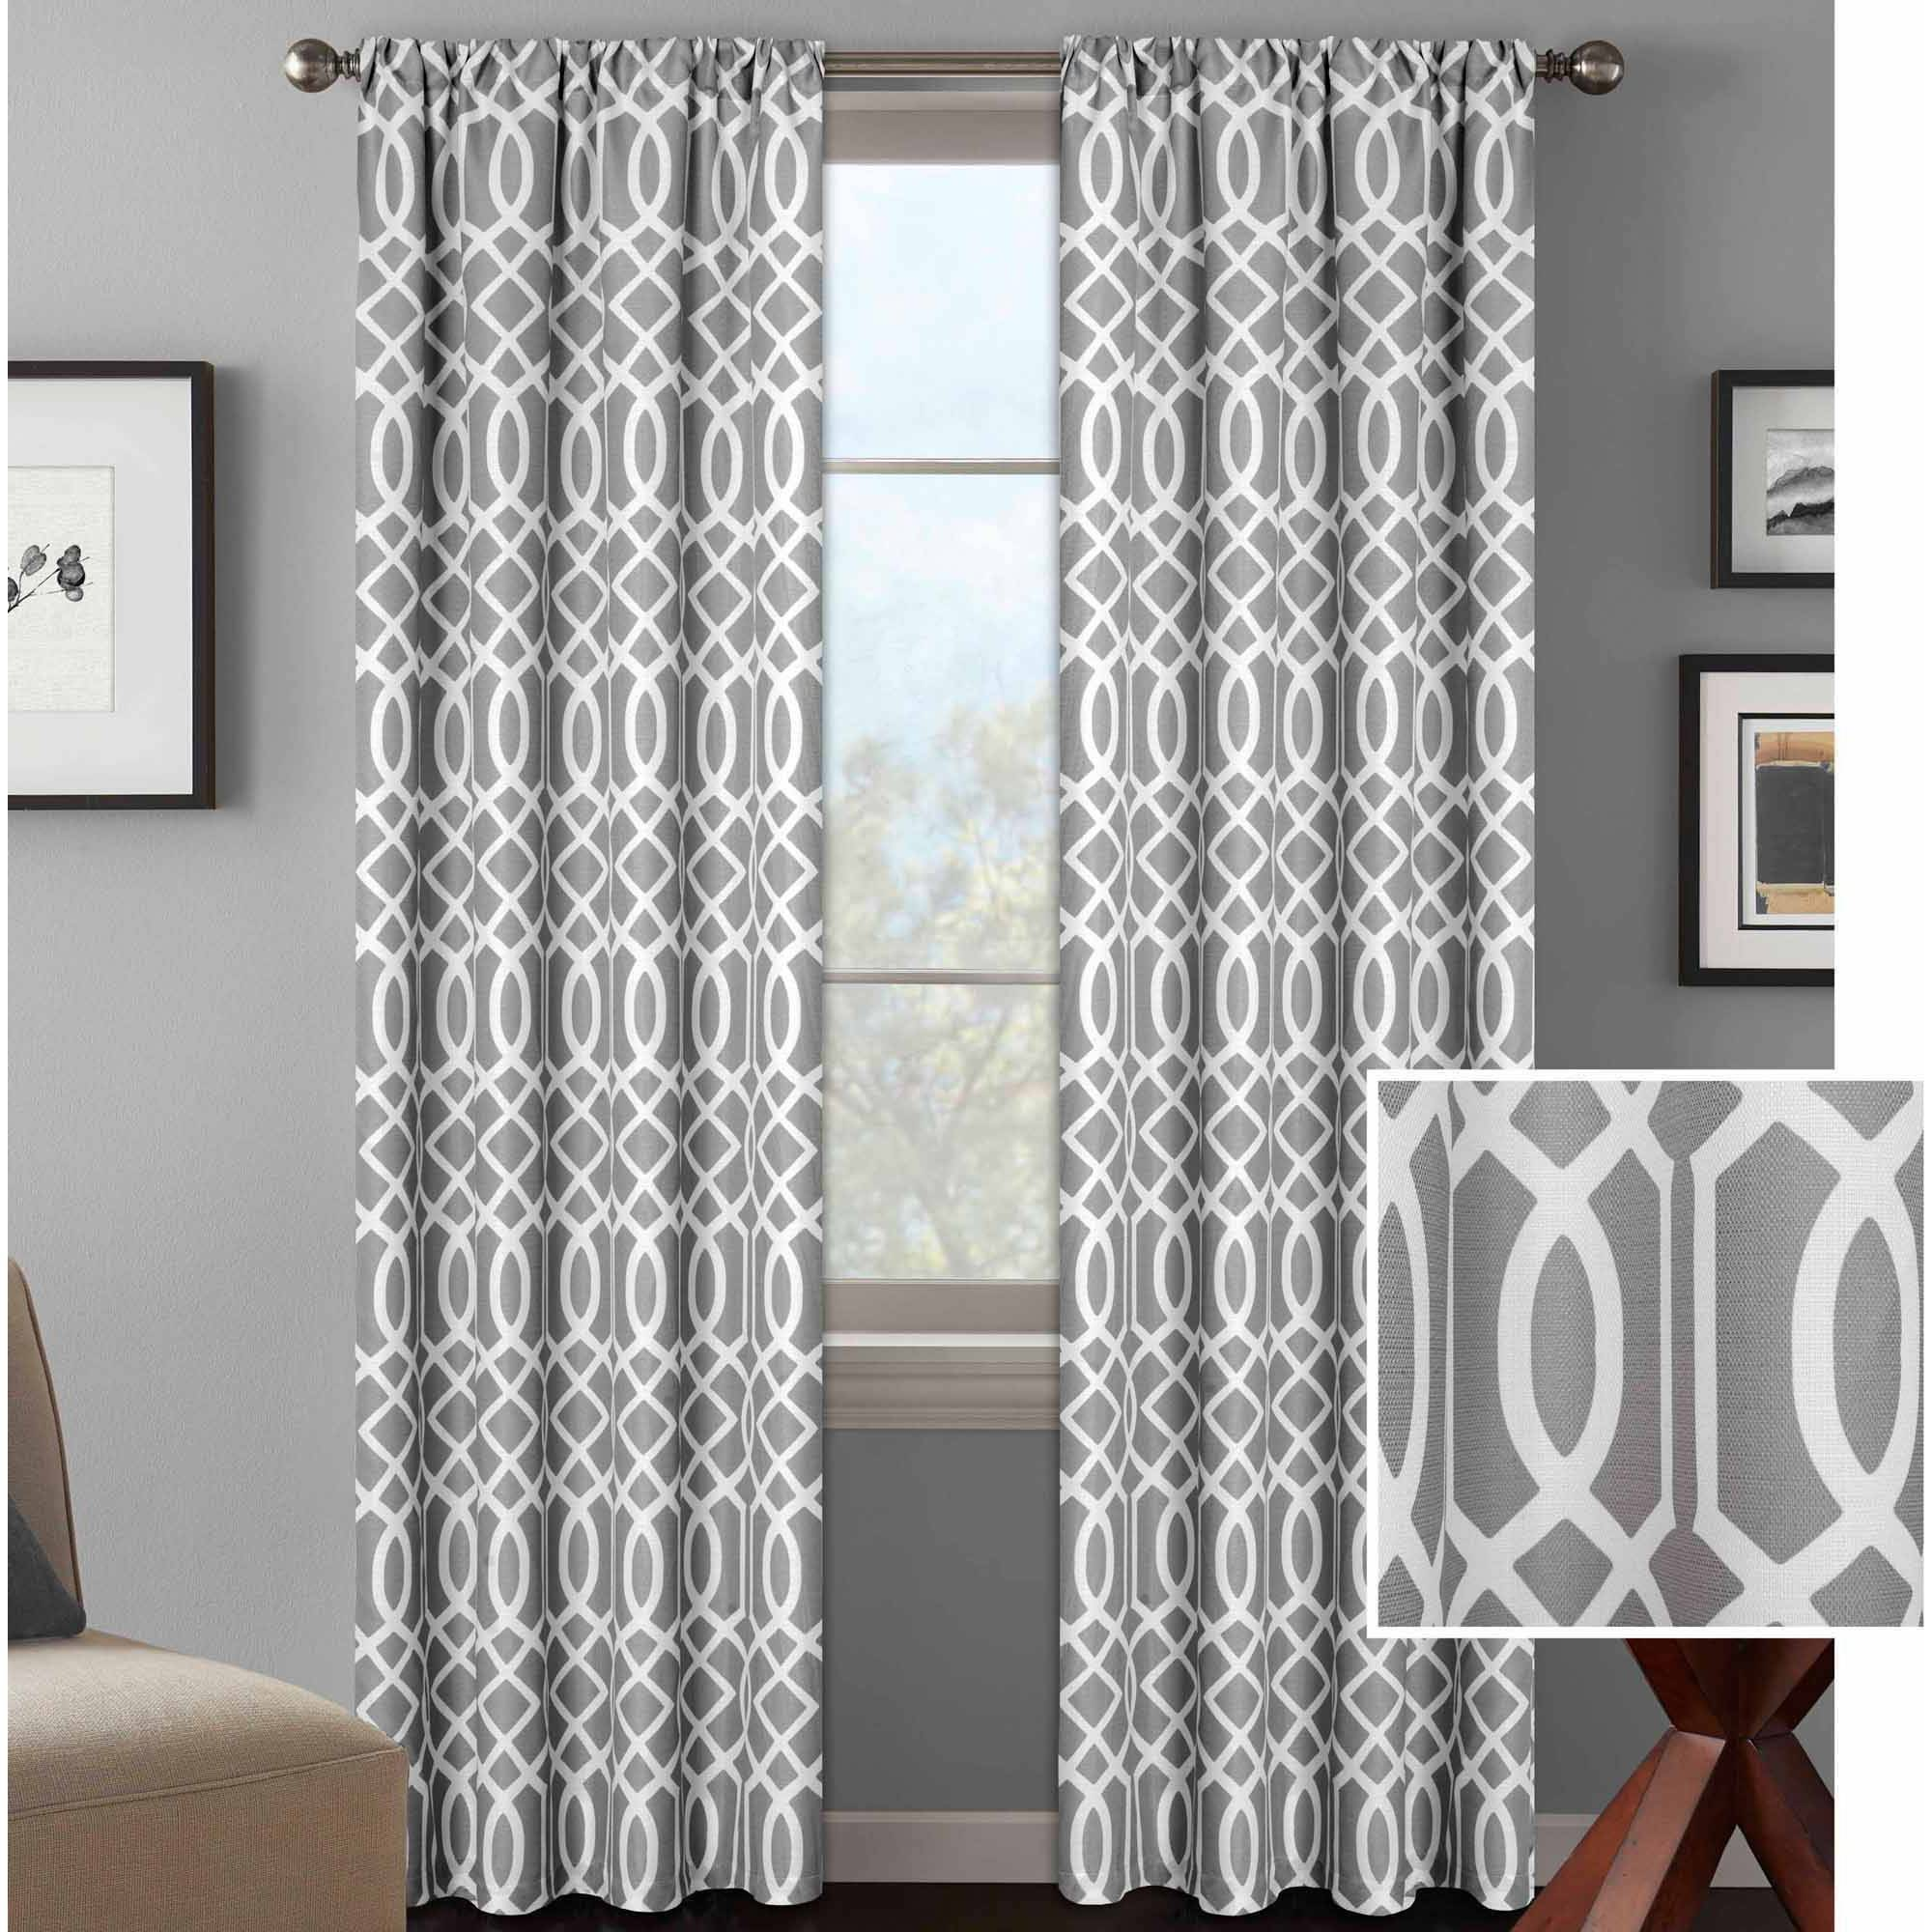 Walmart Curtains For Living Room Better Homes And Gardens Ironwork Window Curtain  Walmart